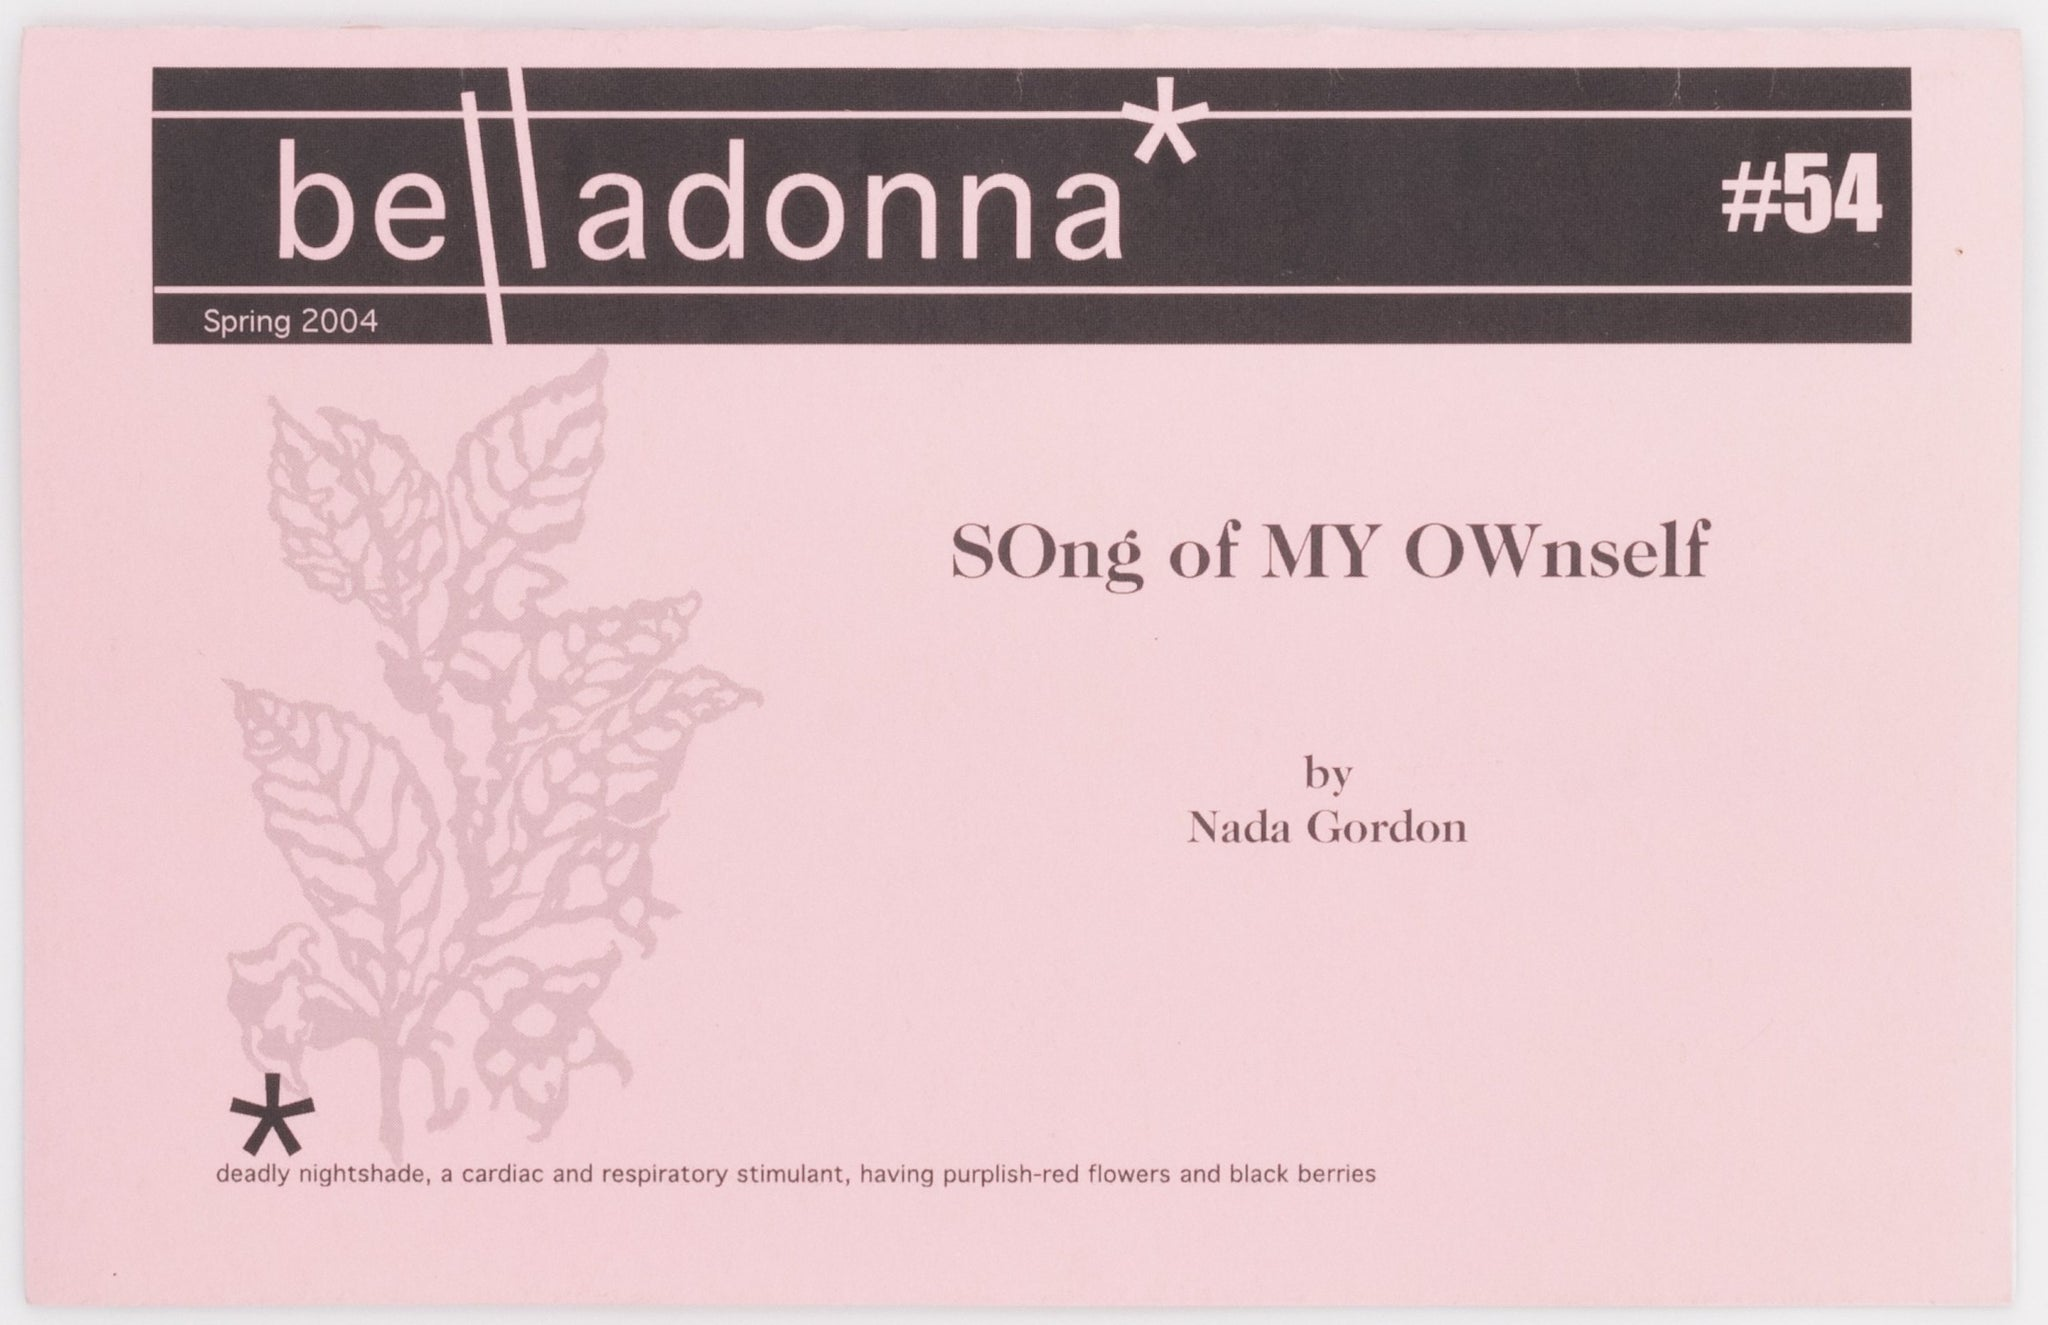 SOng of MY OWnself (Belladonna* #54)